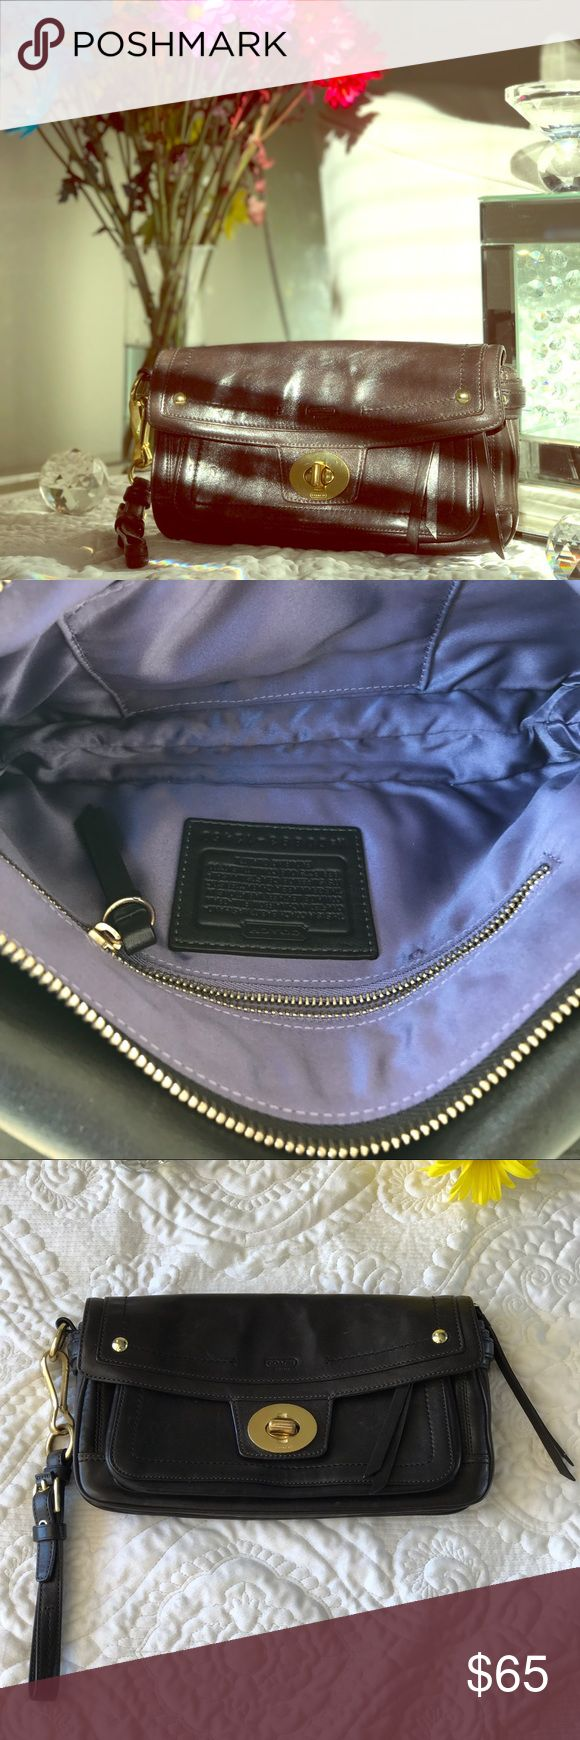 Coach Legacy Hampton Leather Clutch Style: 12450. Dark Brown Clutch Bag with pastel purple interior. Clutch has minor wear and tear signs, including minor wear and tear on clutch hardware. Also, very small burn mark inside first/smallest compartment  (as shown in last photo). Coach Bags Clutches & Wristlets